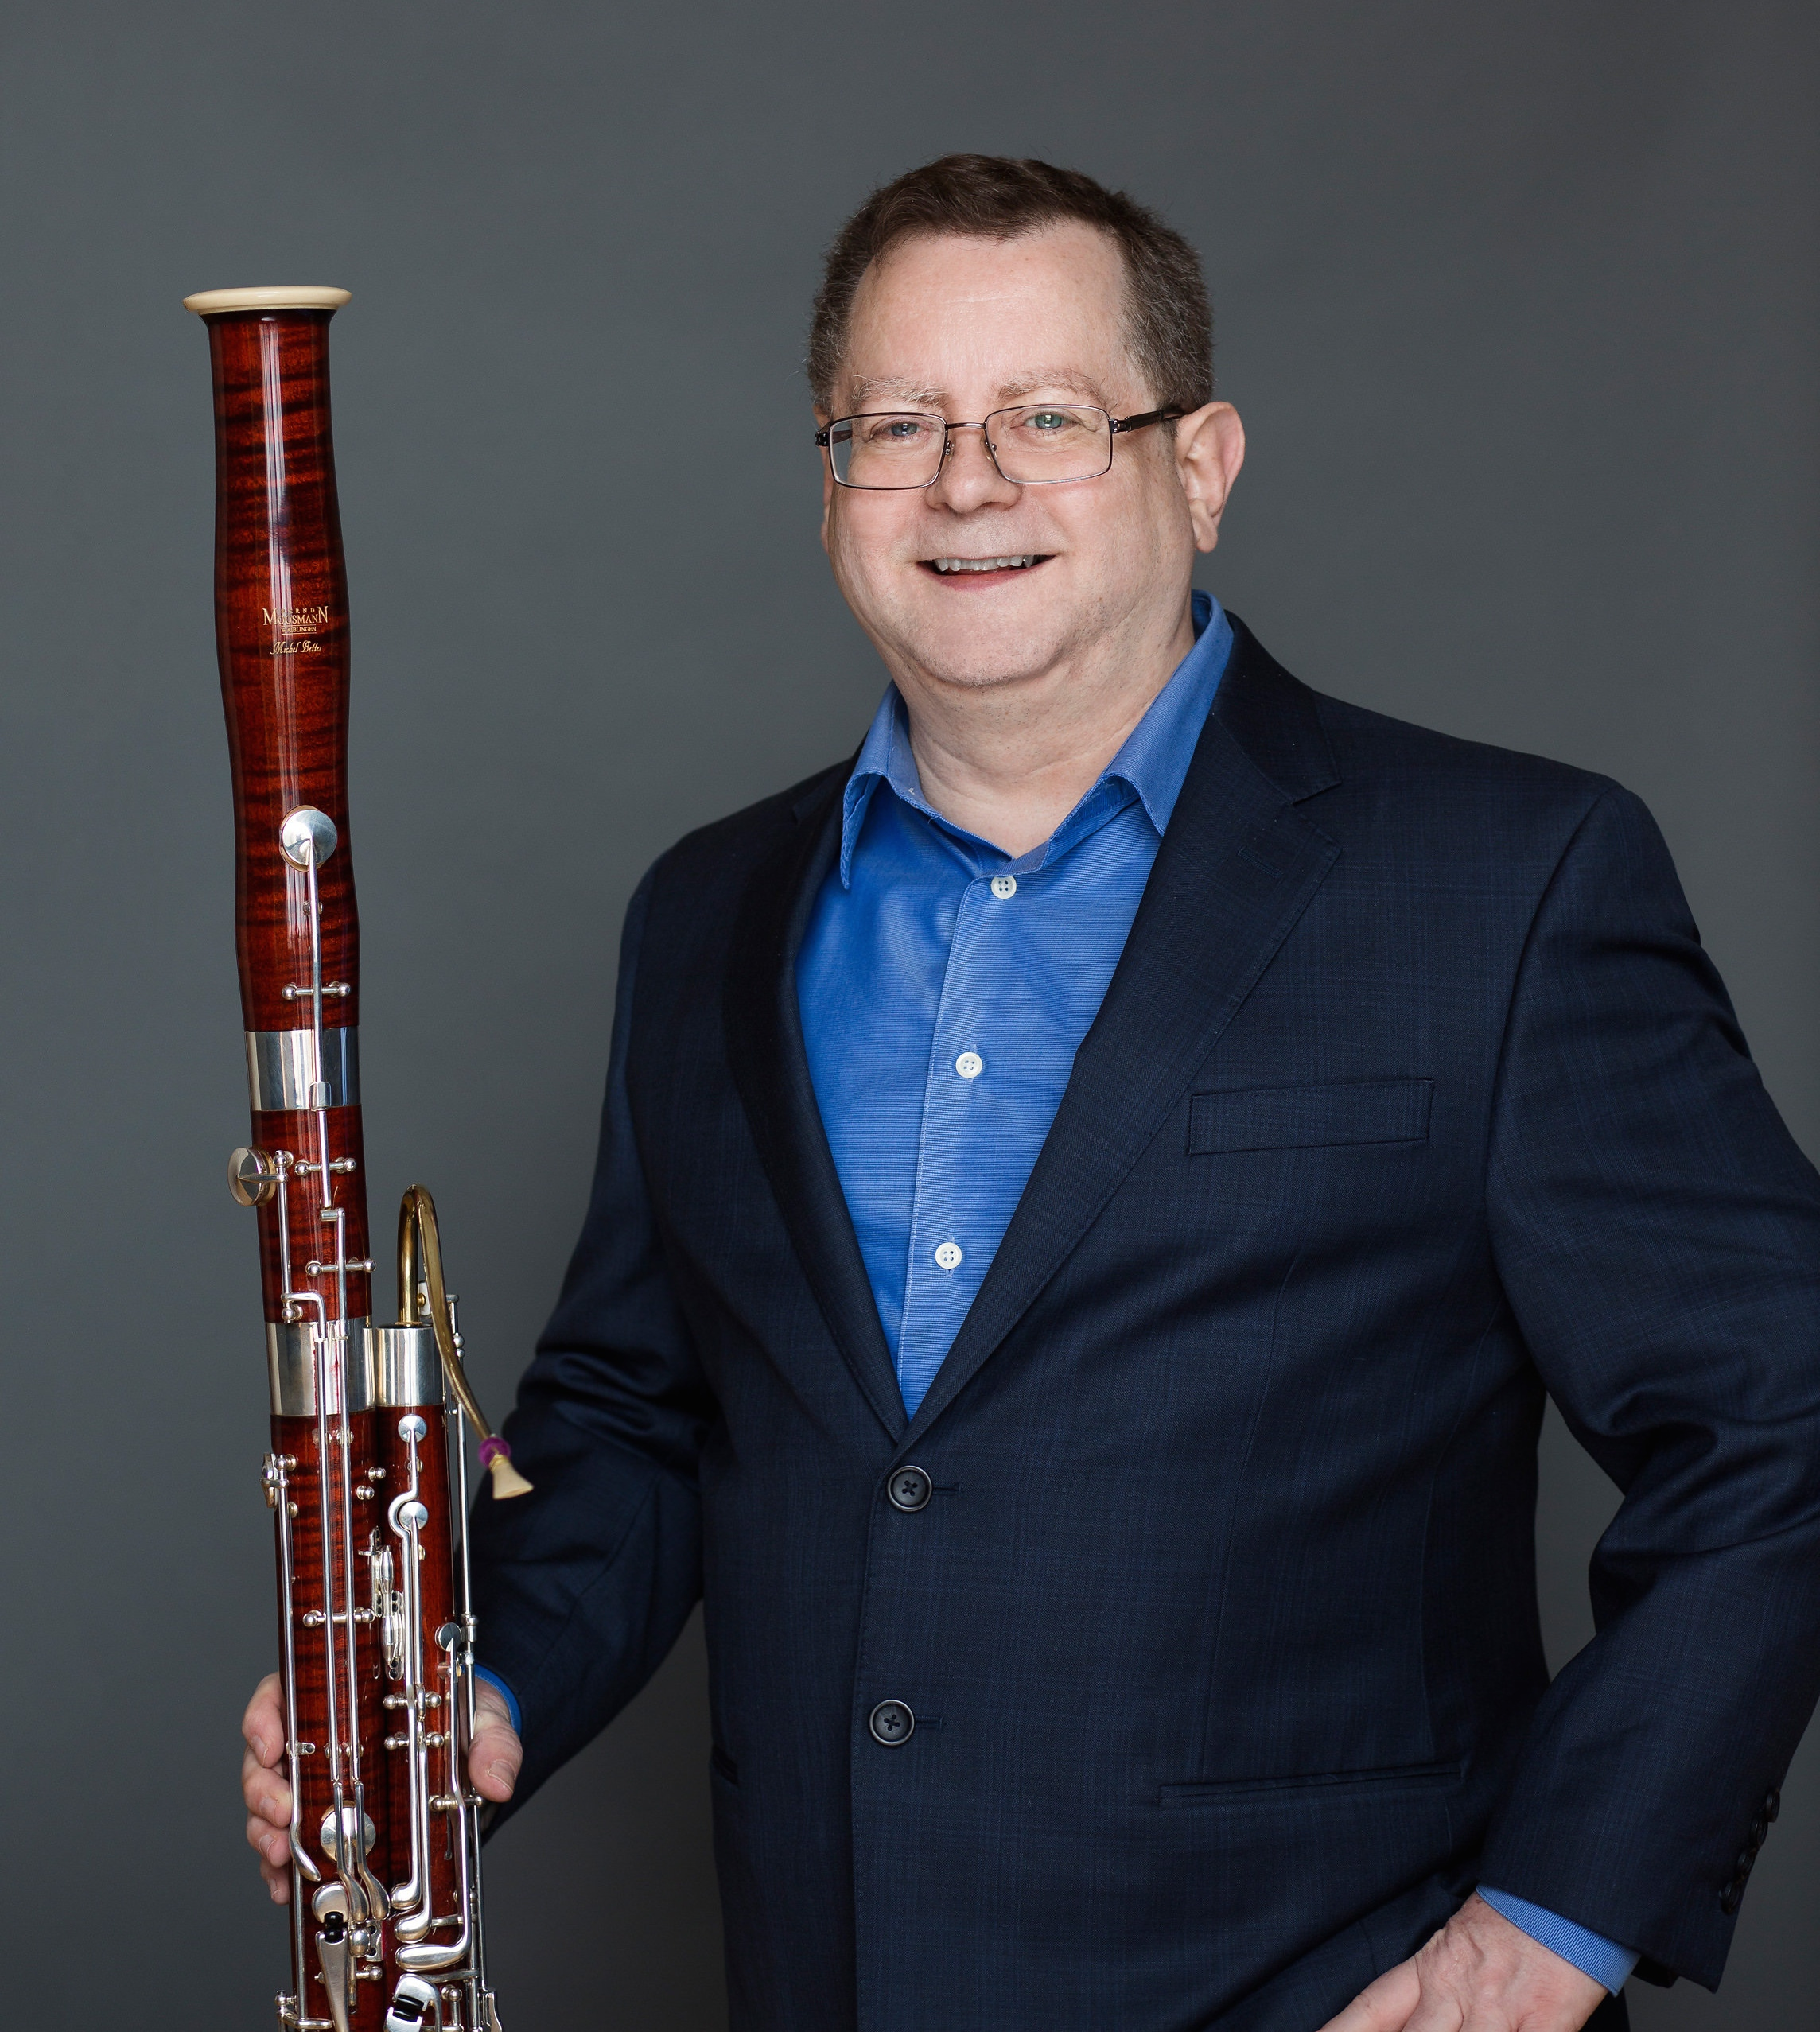 Michel Bettez bassoon 2017 - Künstler